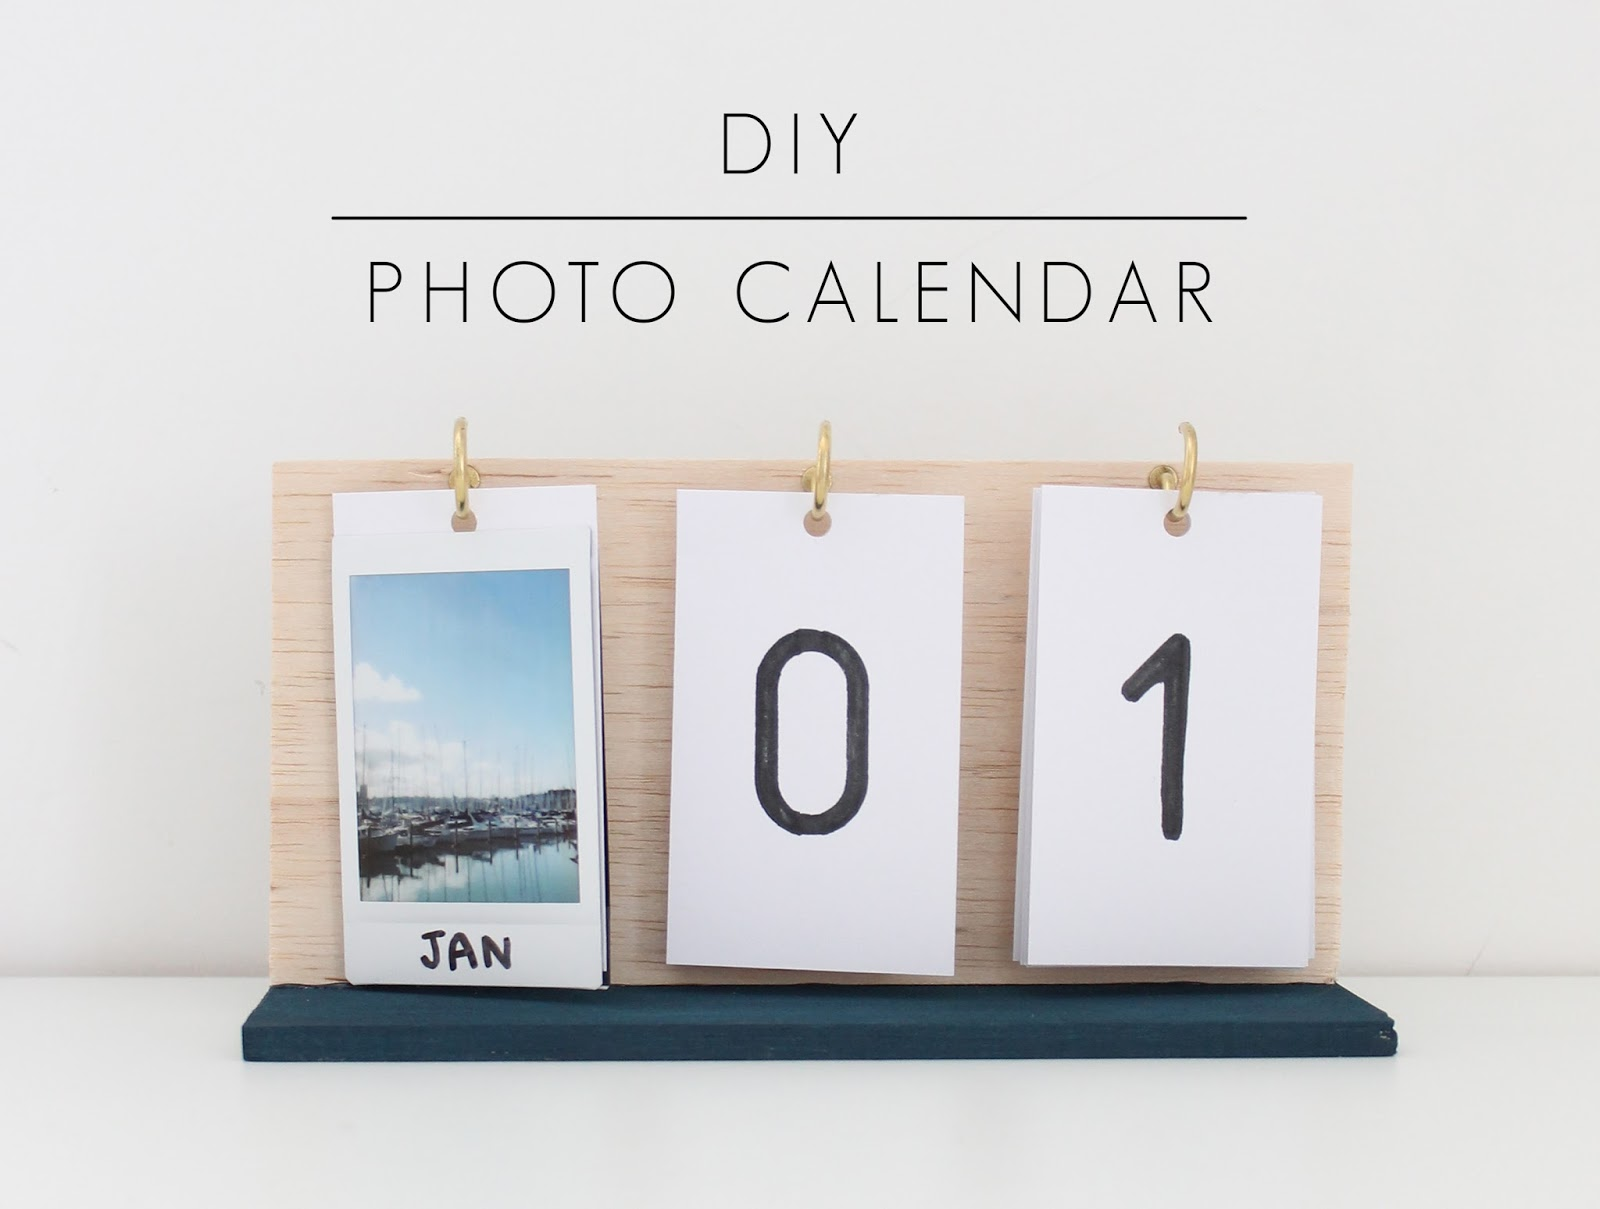 DIY Photo Calendar via Harri Wren